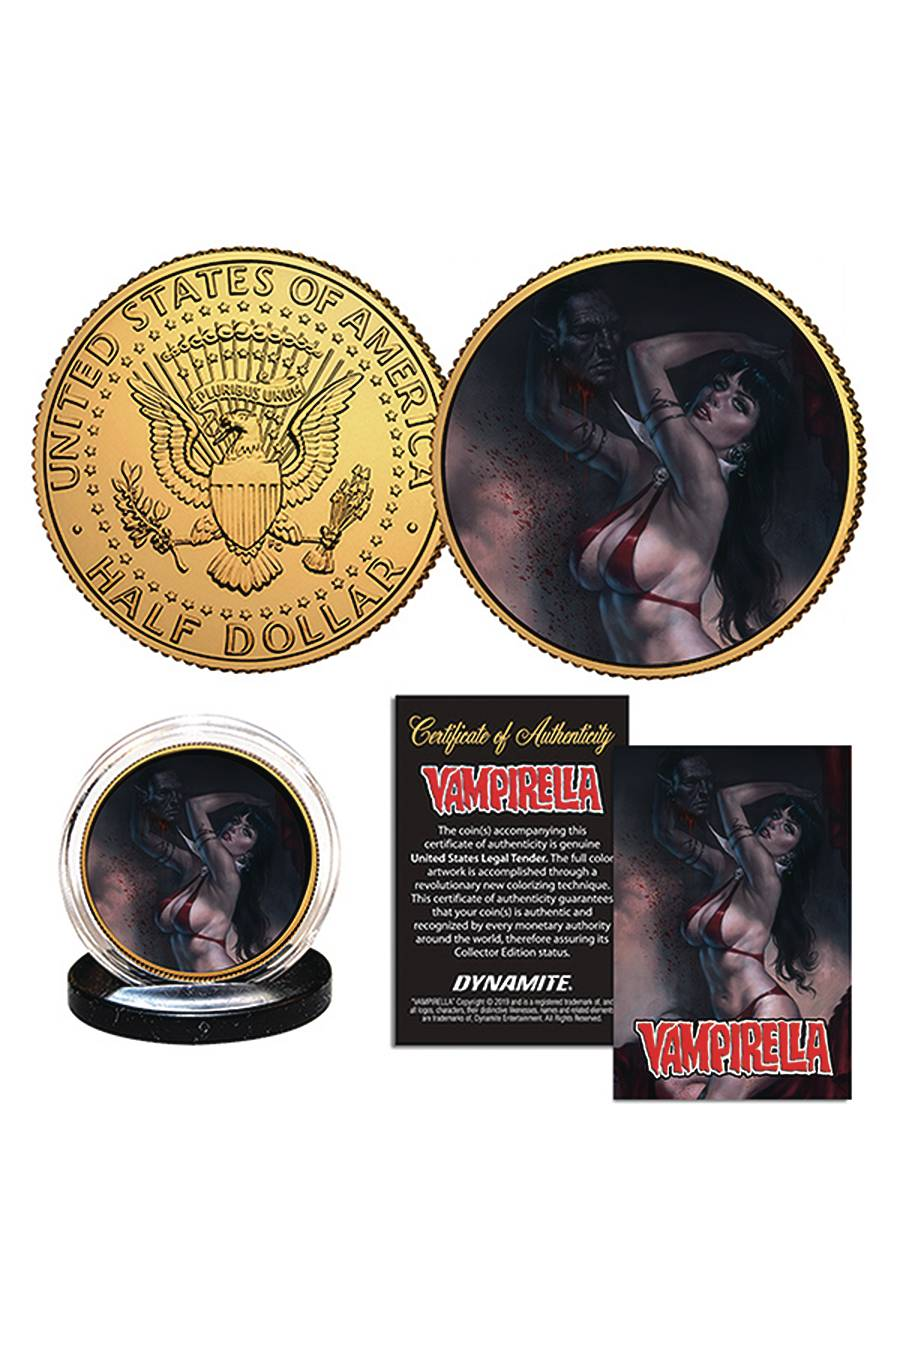 VAMPIRELLA PARRILLO GOLD COLL COIN